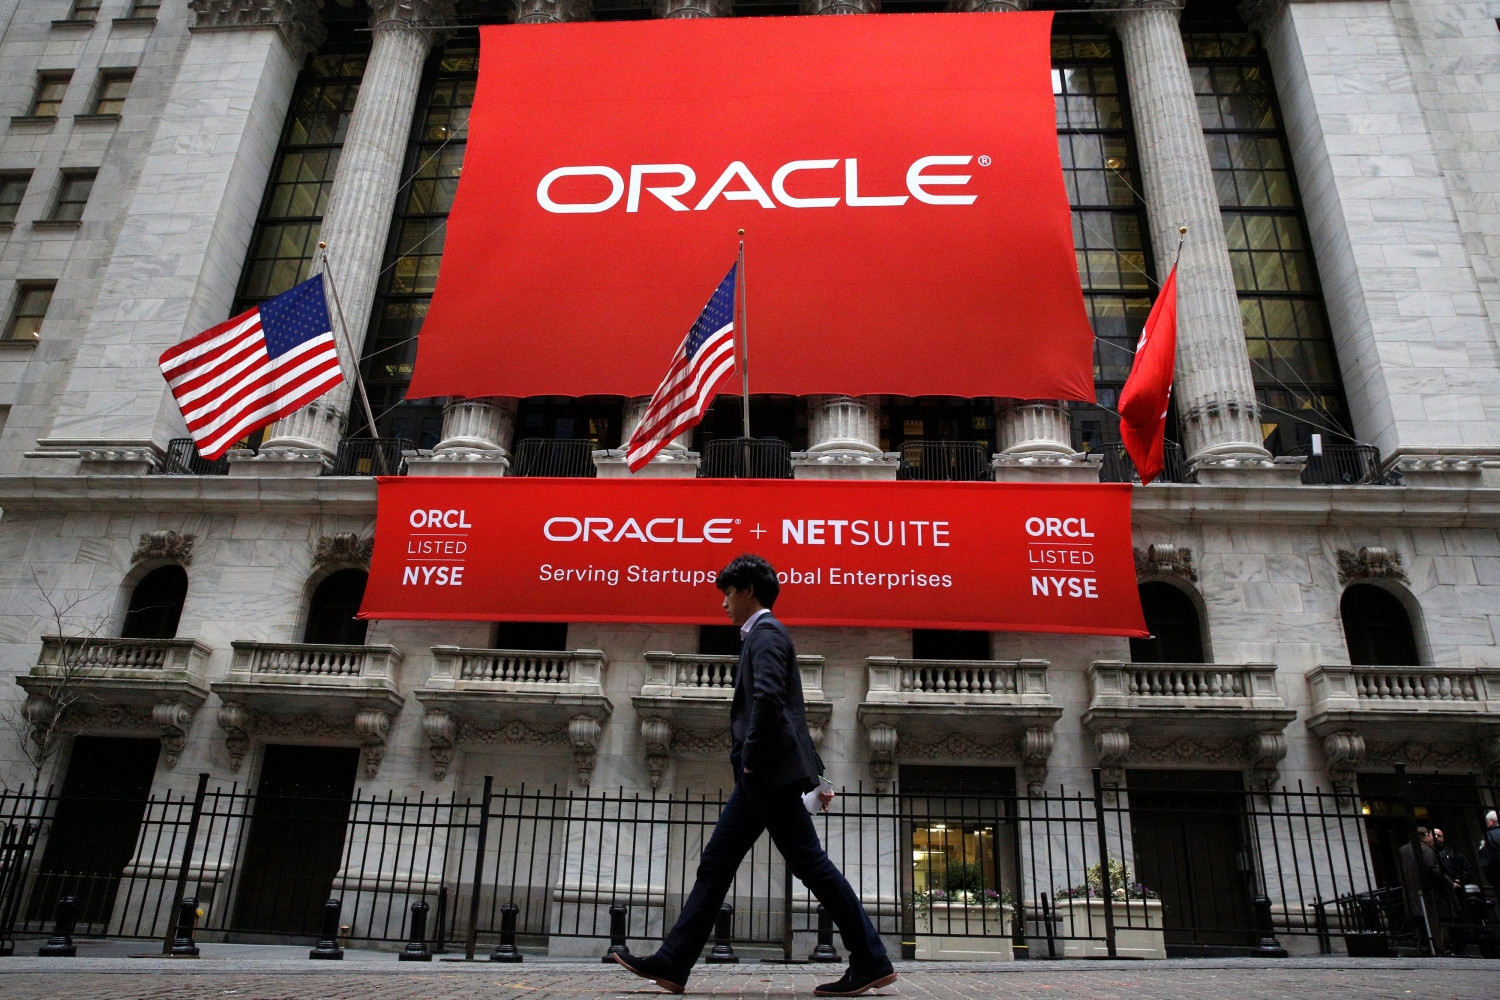 Oracle Sued by U.S. Over Alleged Discriminatory Pay, Hiring